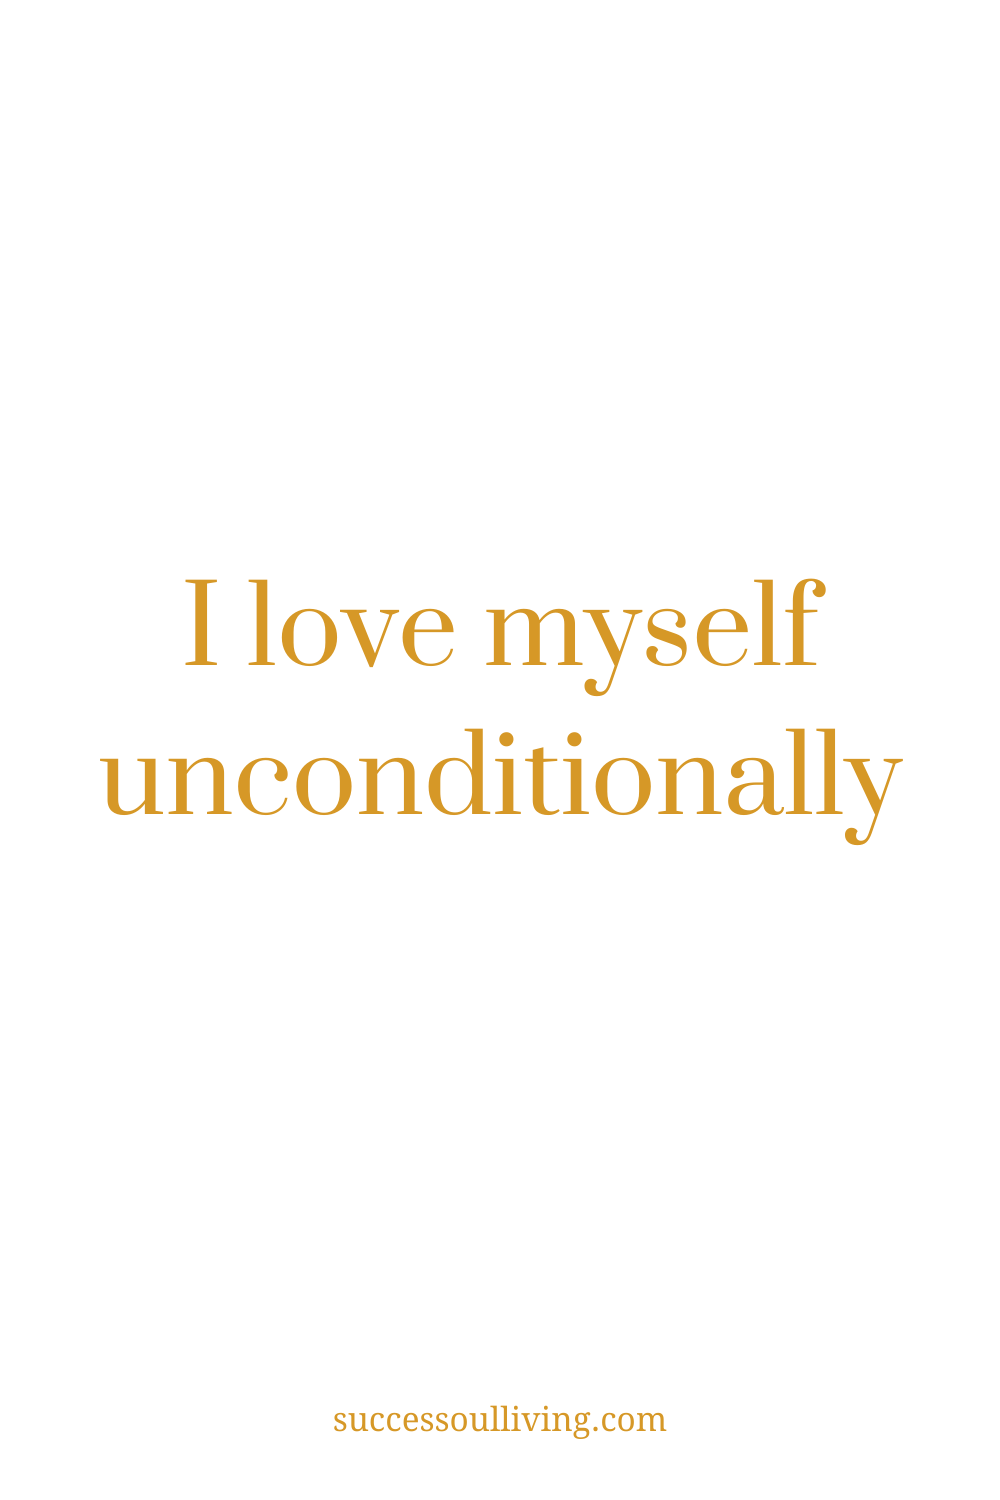 A Daily Affirmation For Manifesting Love | Success-soul® Living